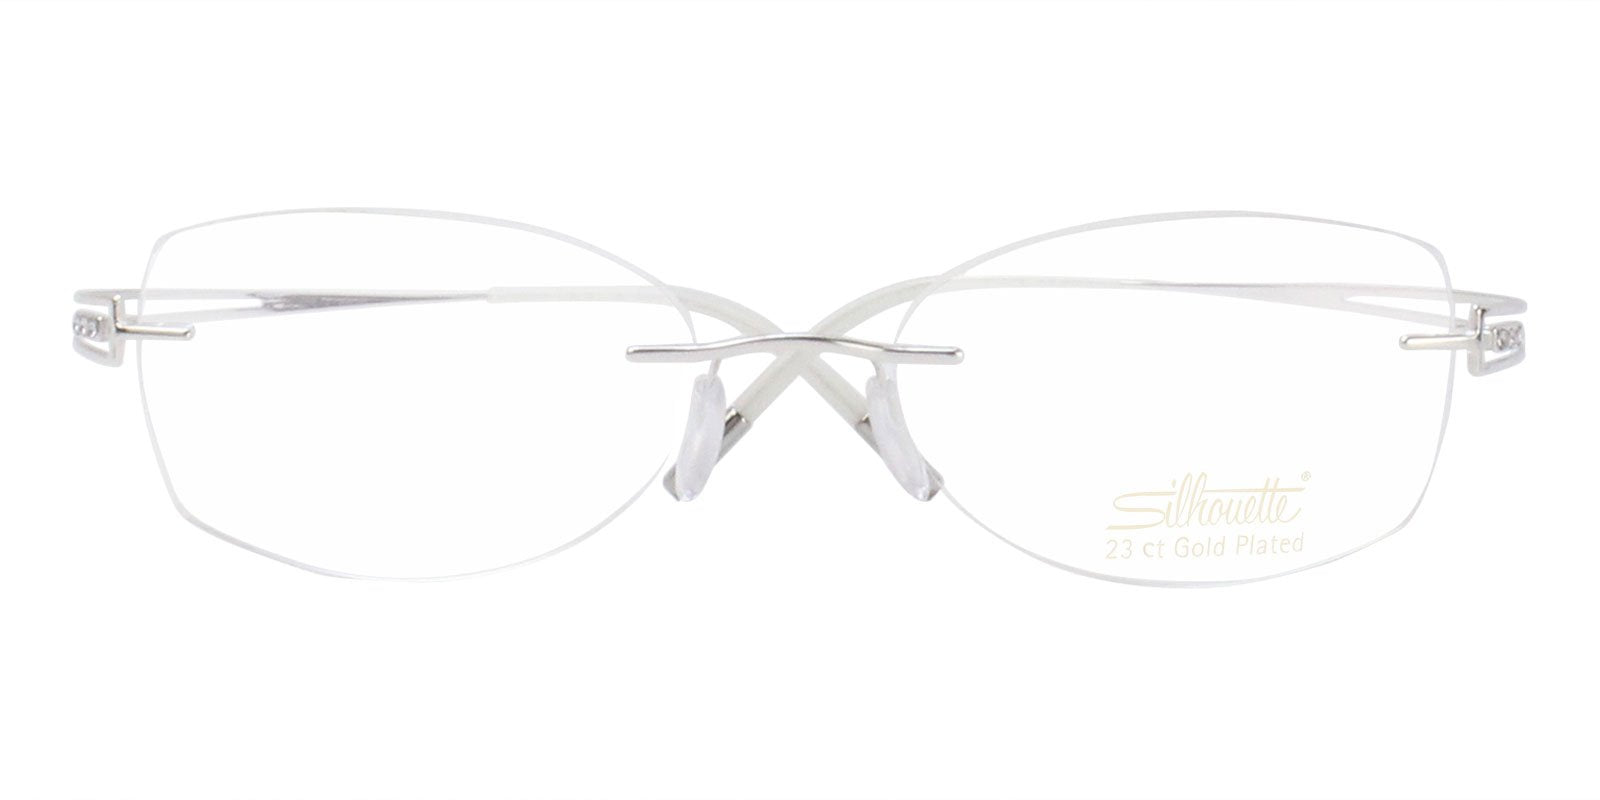 Silhouette - S4489/00 Silver Rimless Women Eyeglasses - 51mm-Eyeglasses-Designer Eyes